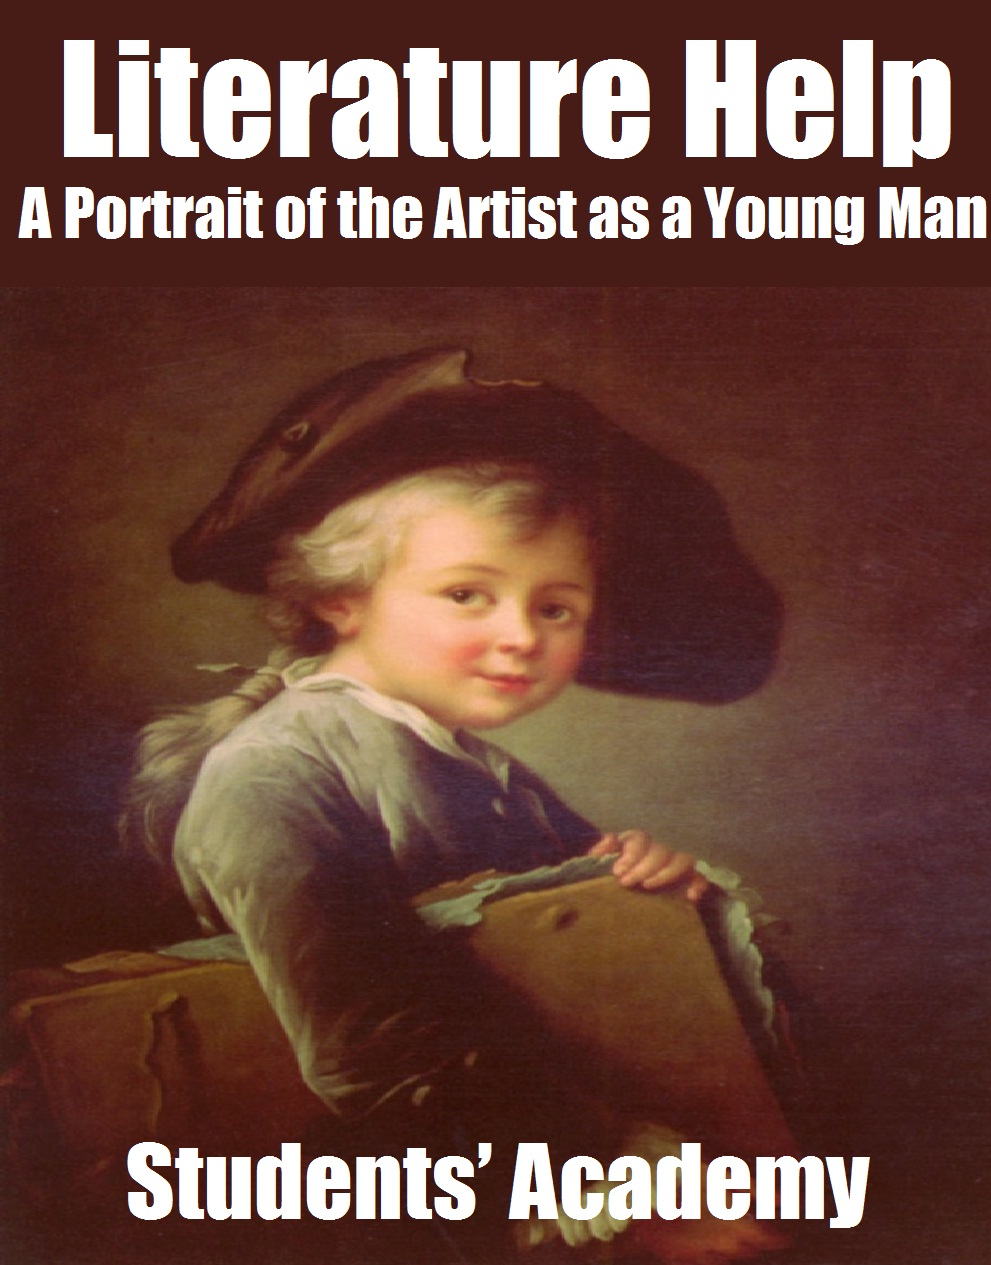 an analysis of the link between daedalus and stephen from a portrait of an artist as a young man by